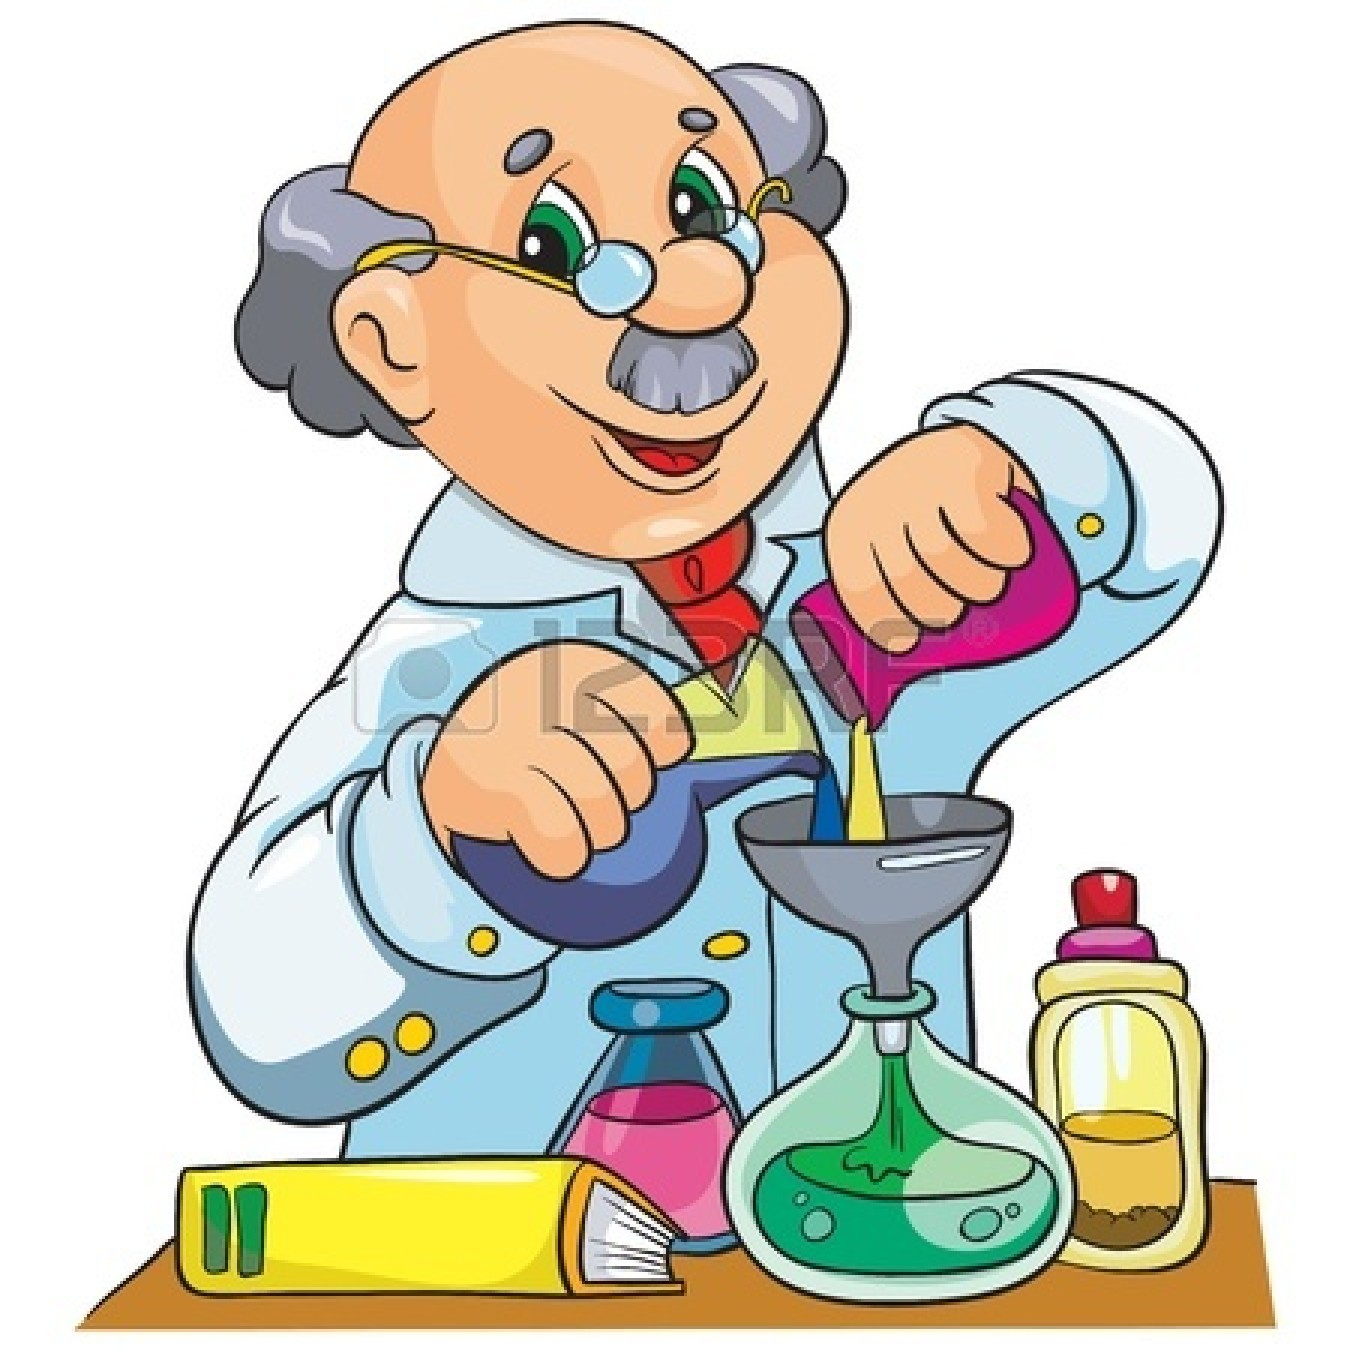 physical science clipart at getdrawings com free for personal use rh getdrawings com